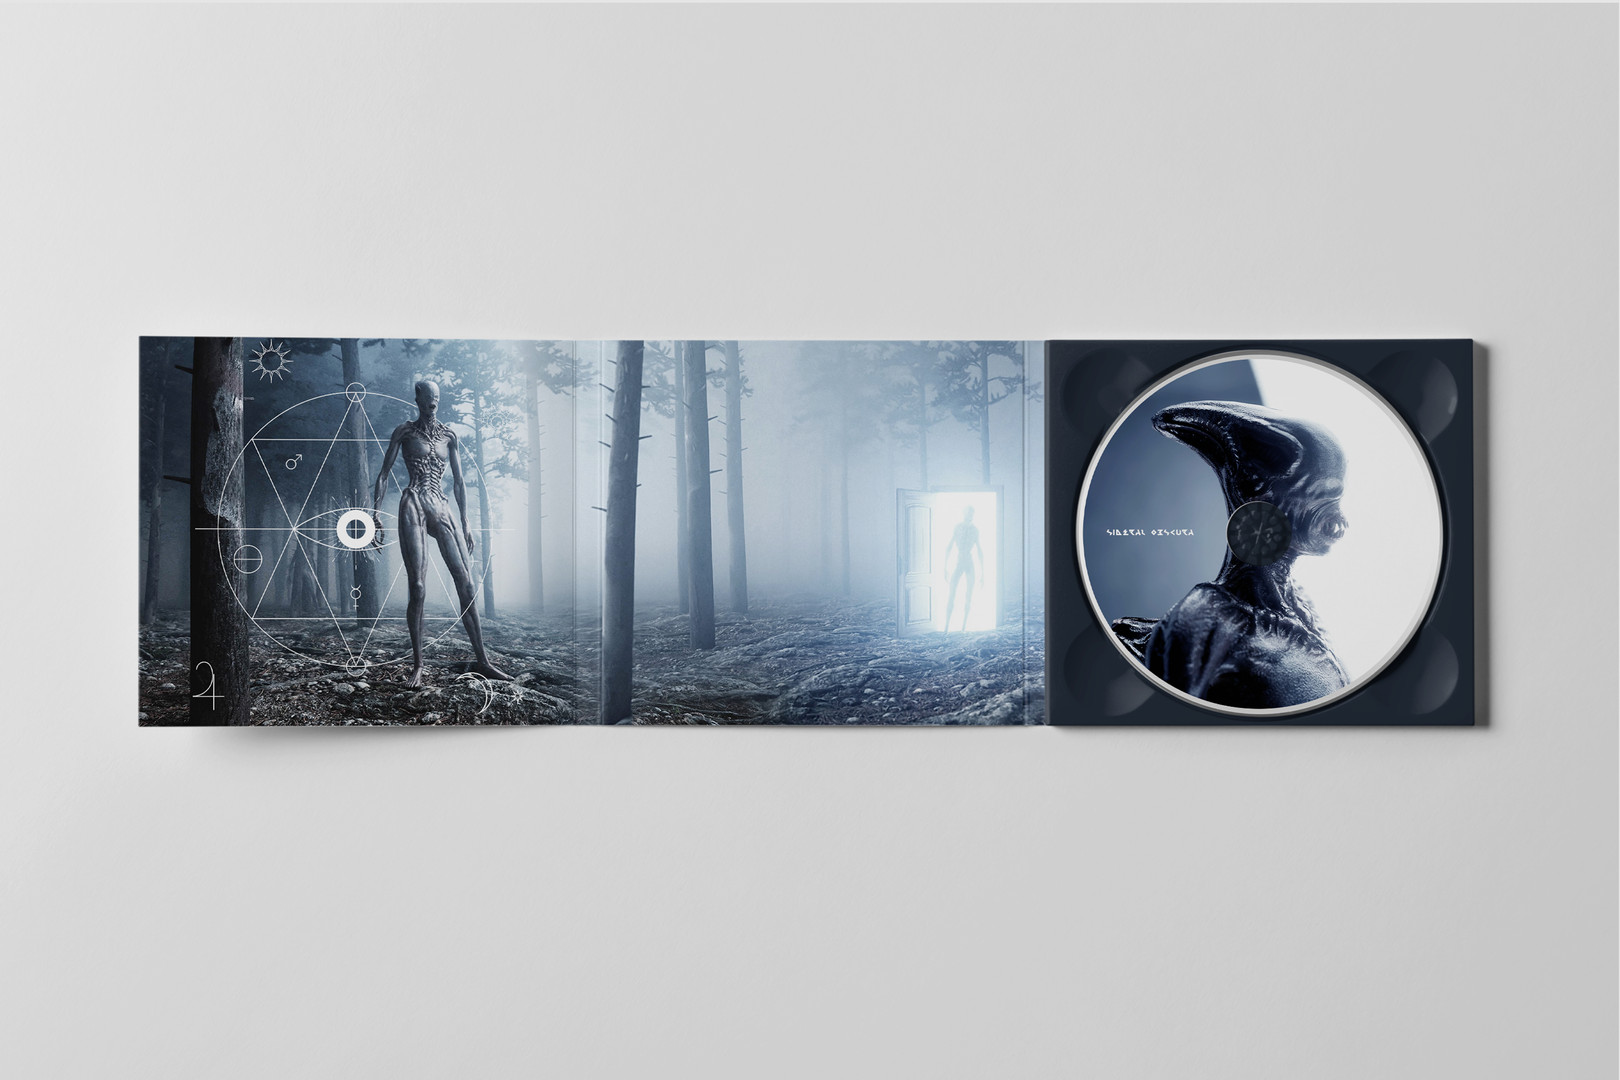 Sideral Obscura digipack 3